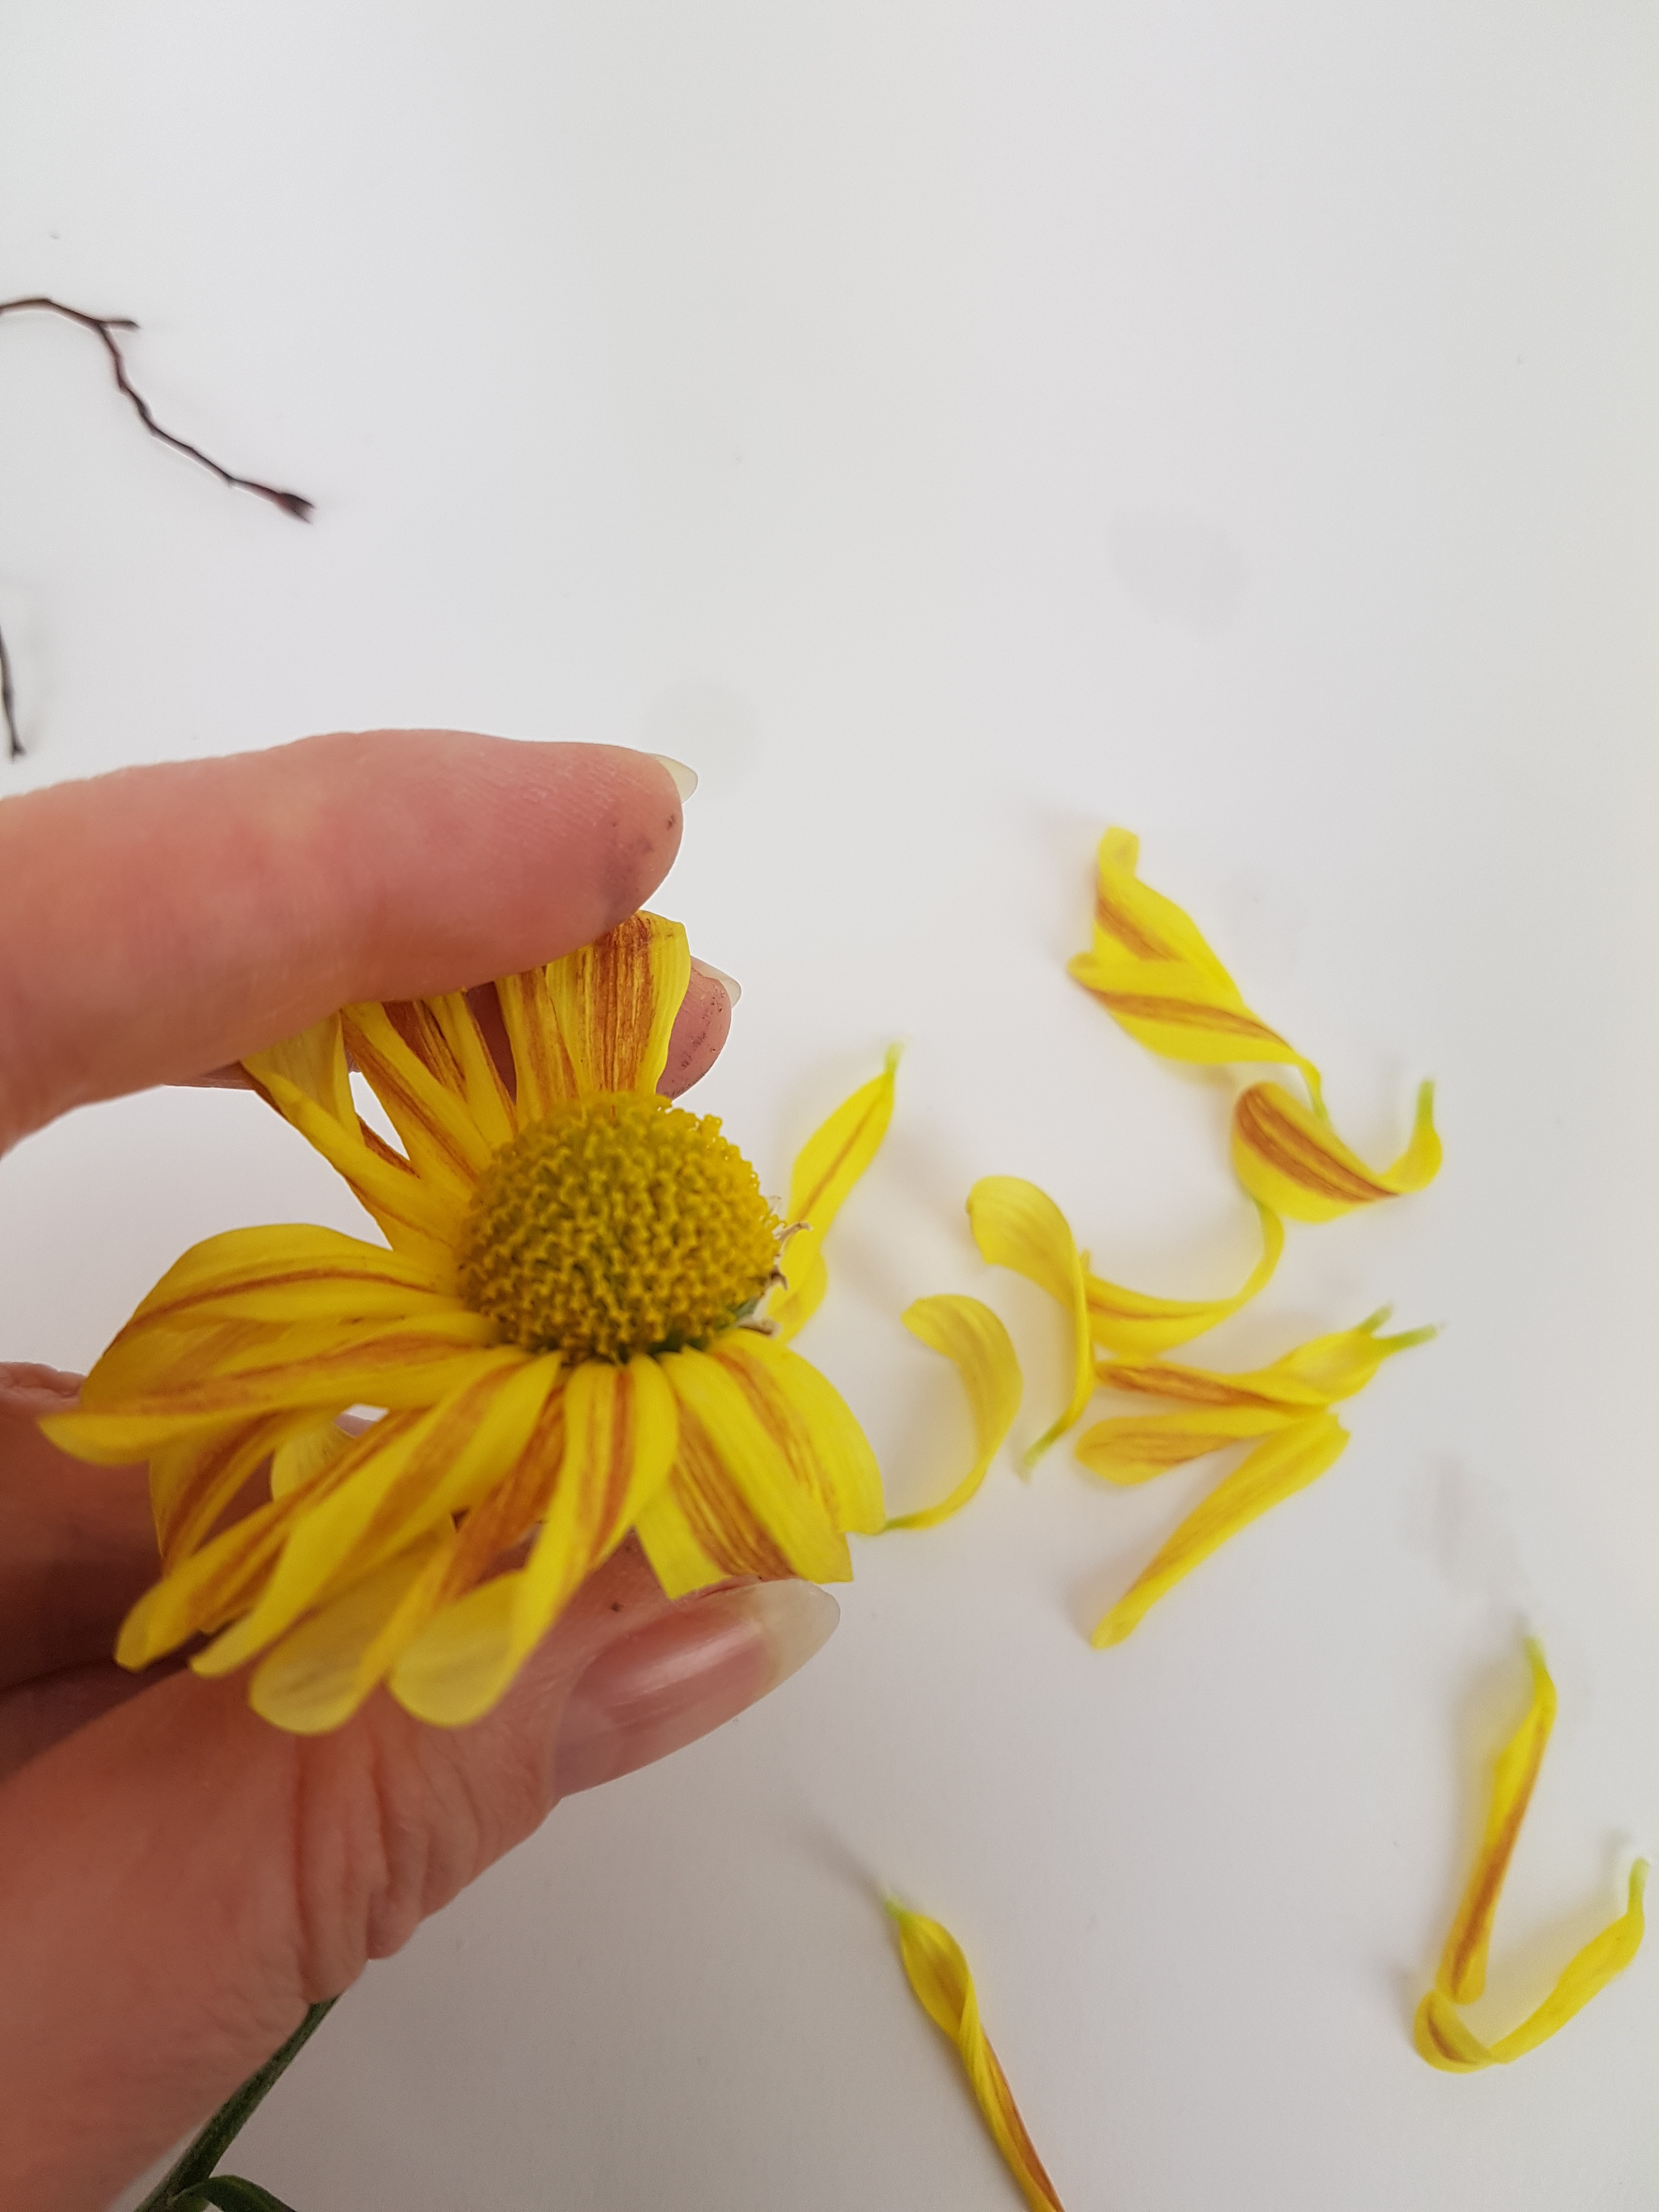 Pick the petals from a chrysanthemum